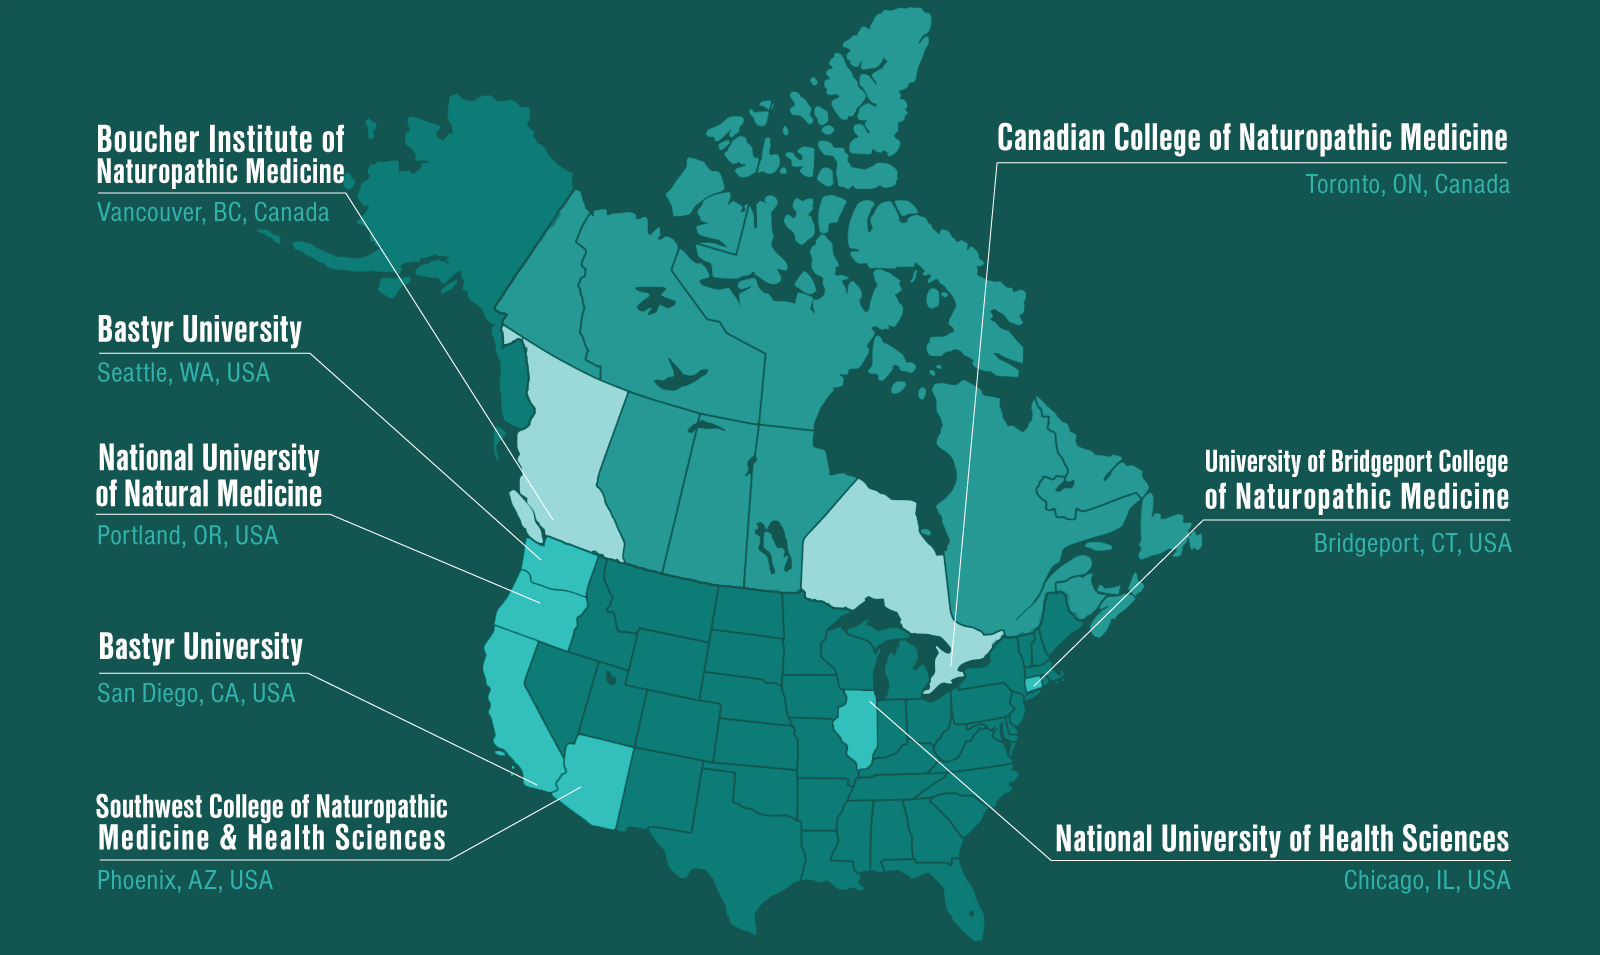 Accredited Naturopathic s of North America on university of wa campus map, uwmc campus map, center for washington map, seattle washington united states map, uw-washington map,